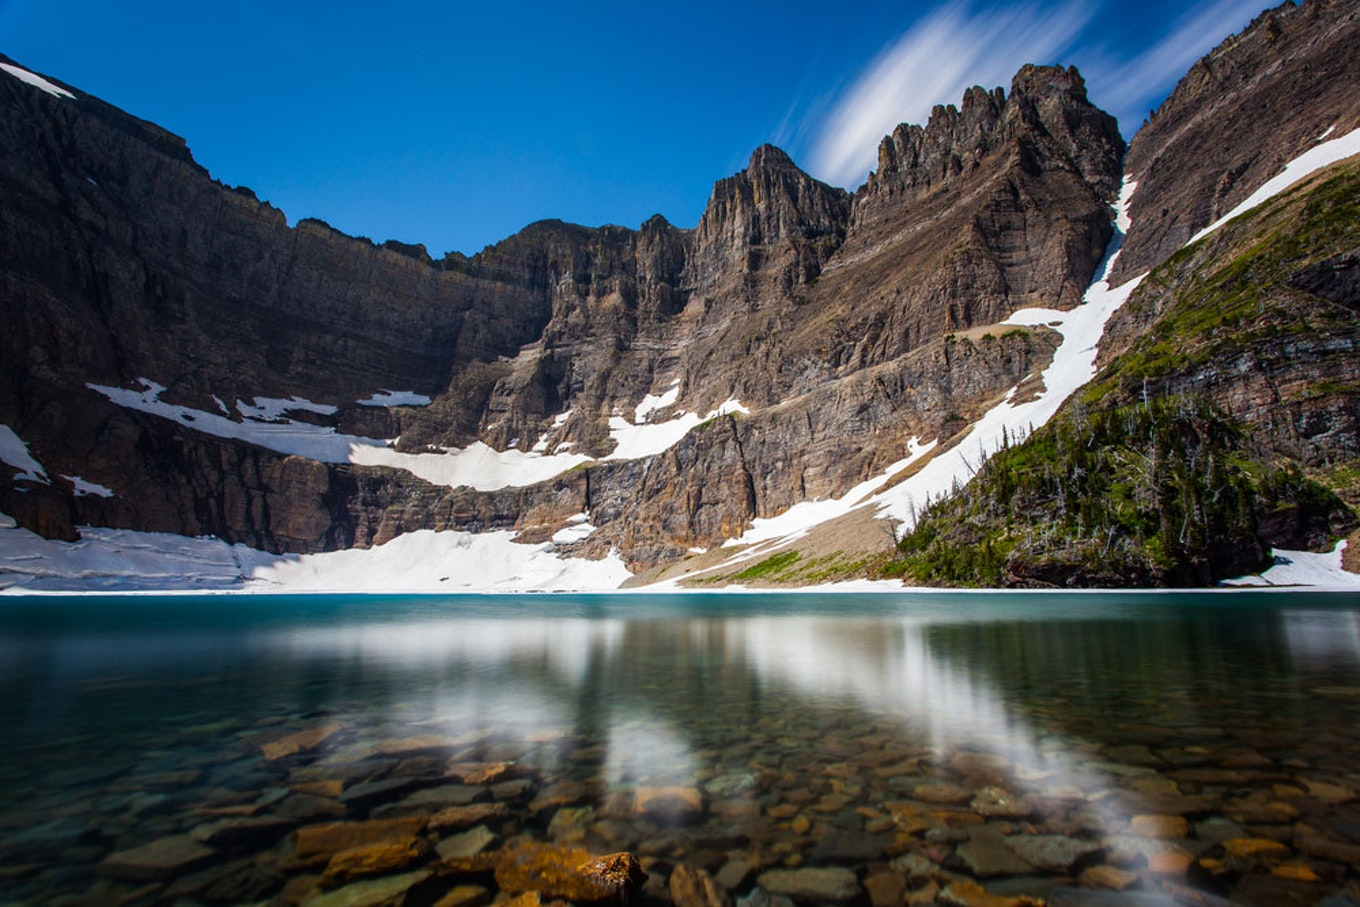 When Is the Best Time to Visit Glacier National Park?